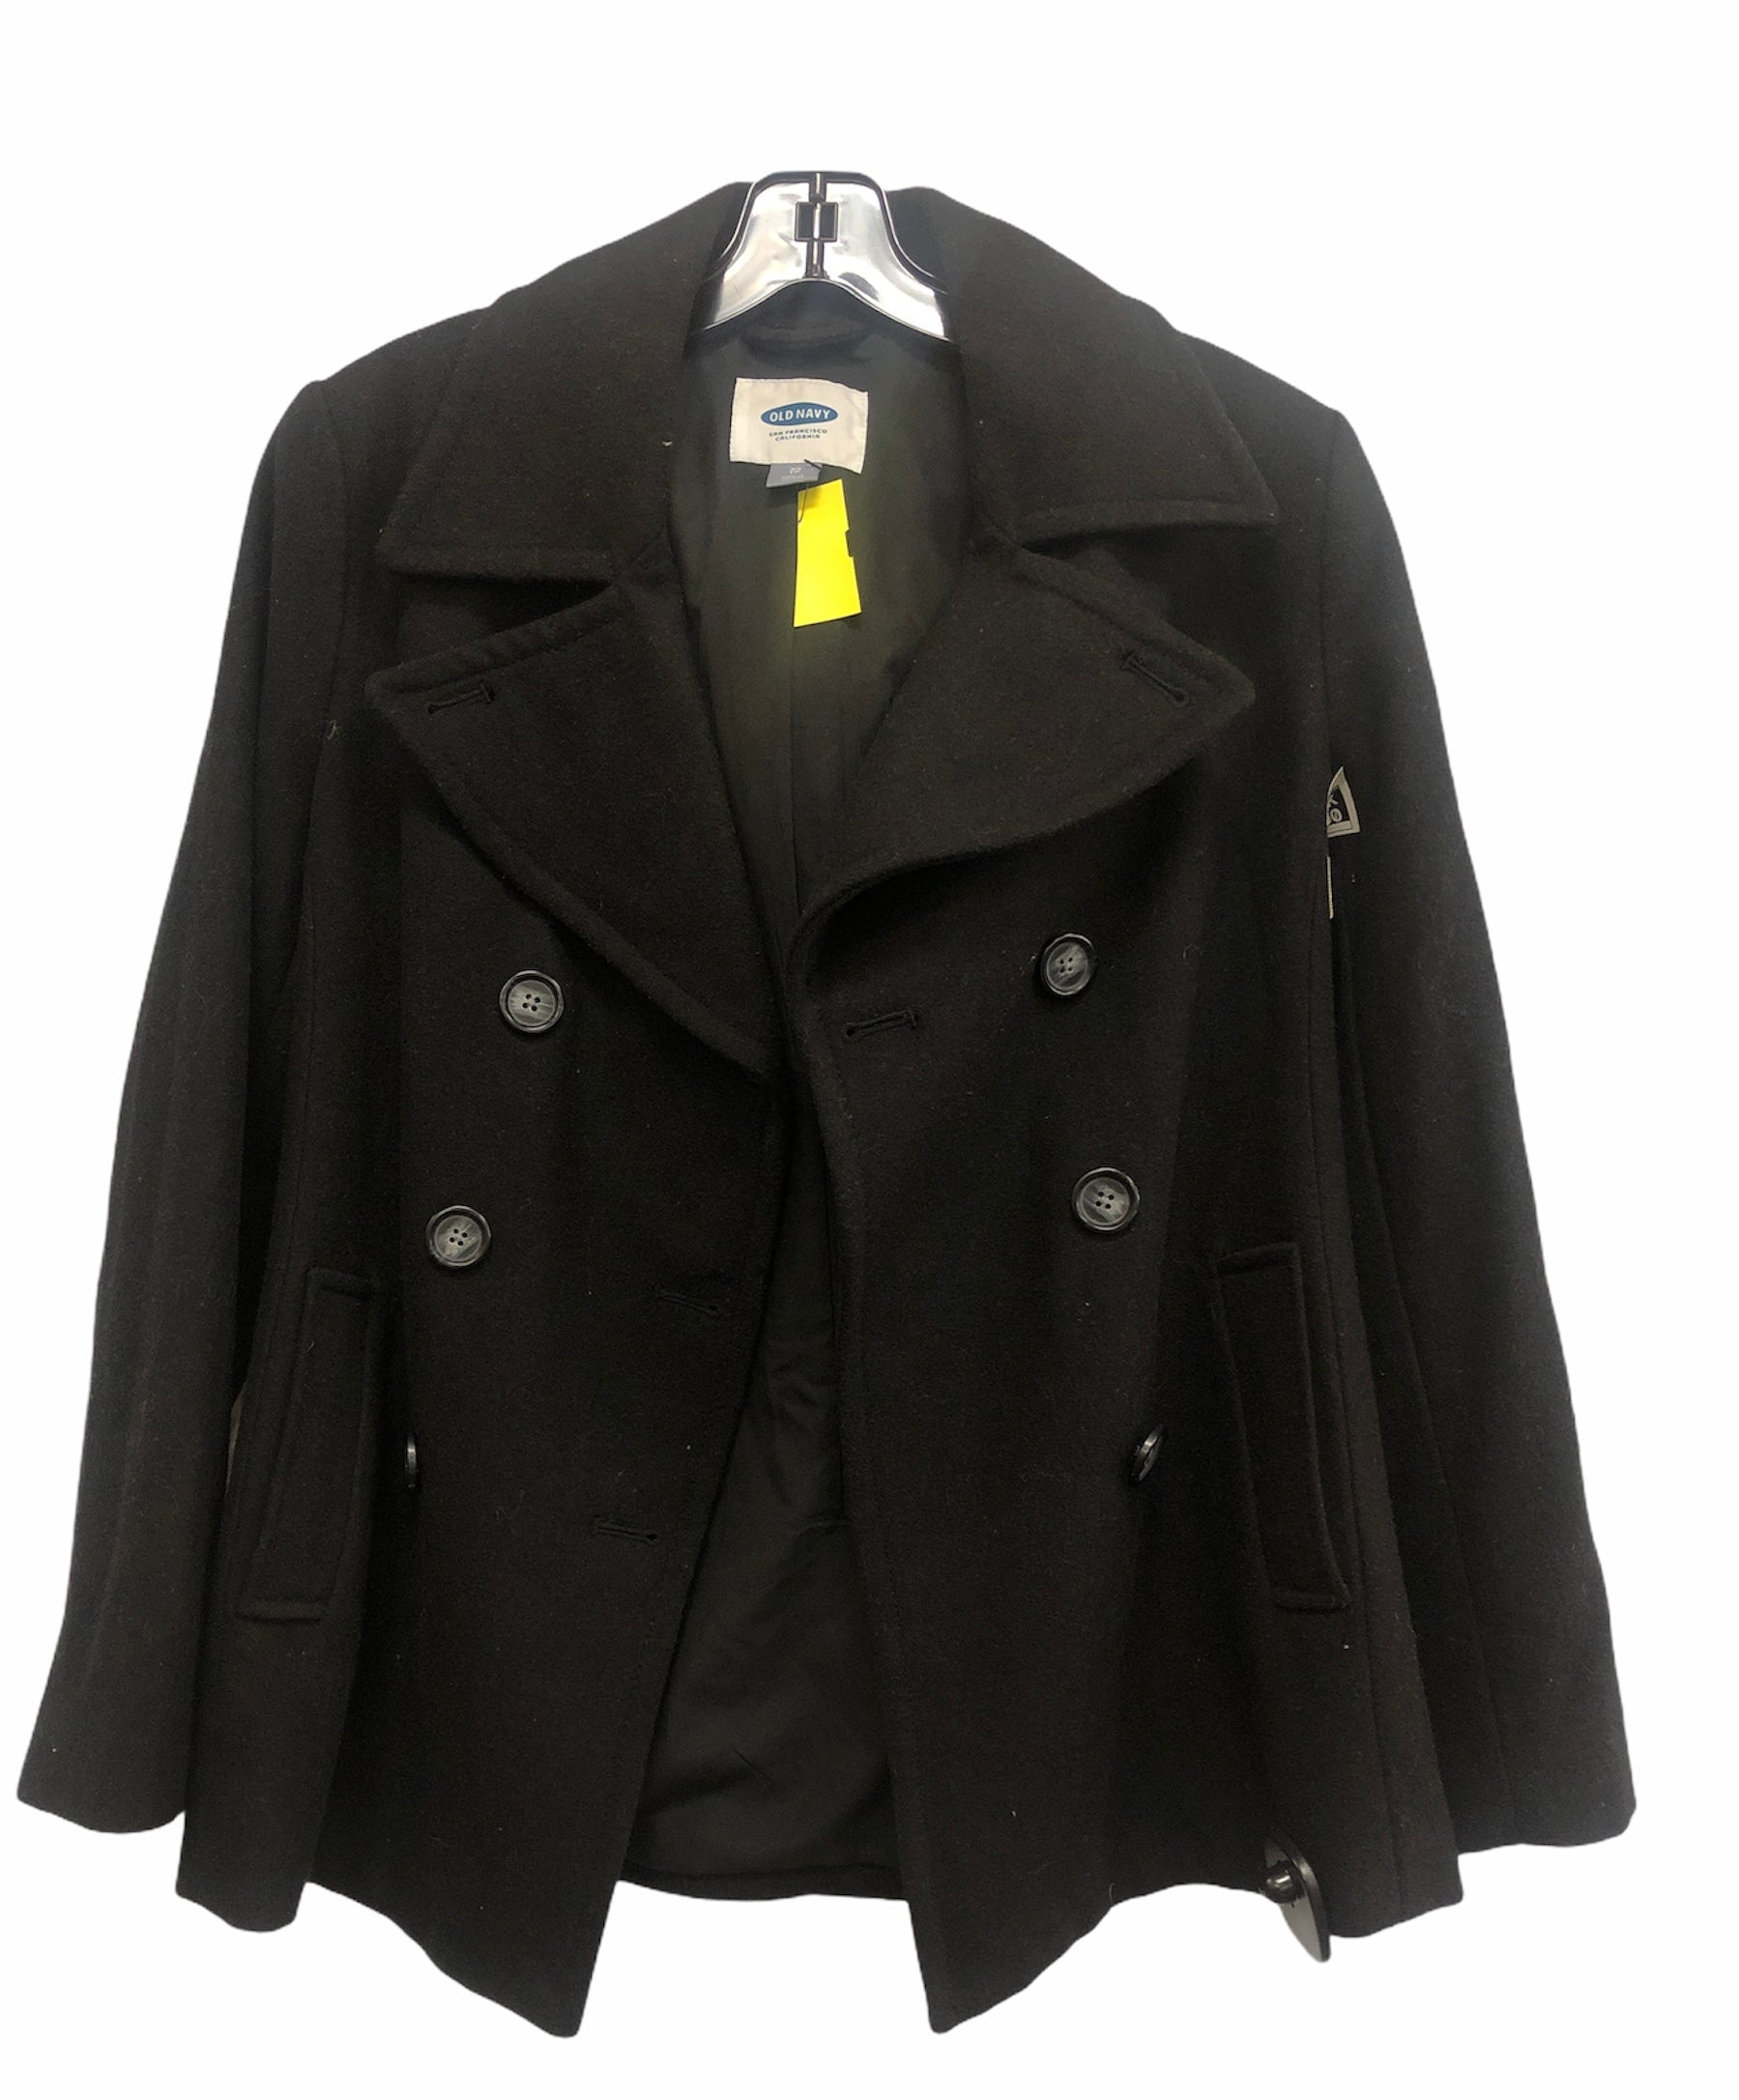 Primary Photo - brand: old navy , style: jacket outdoor , color: black , size: xs , sku: 267-26793-4068